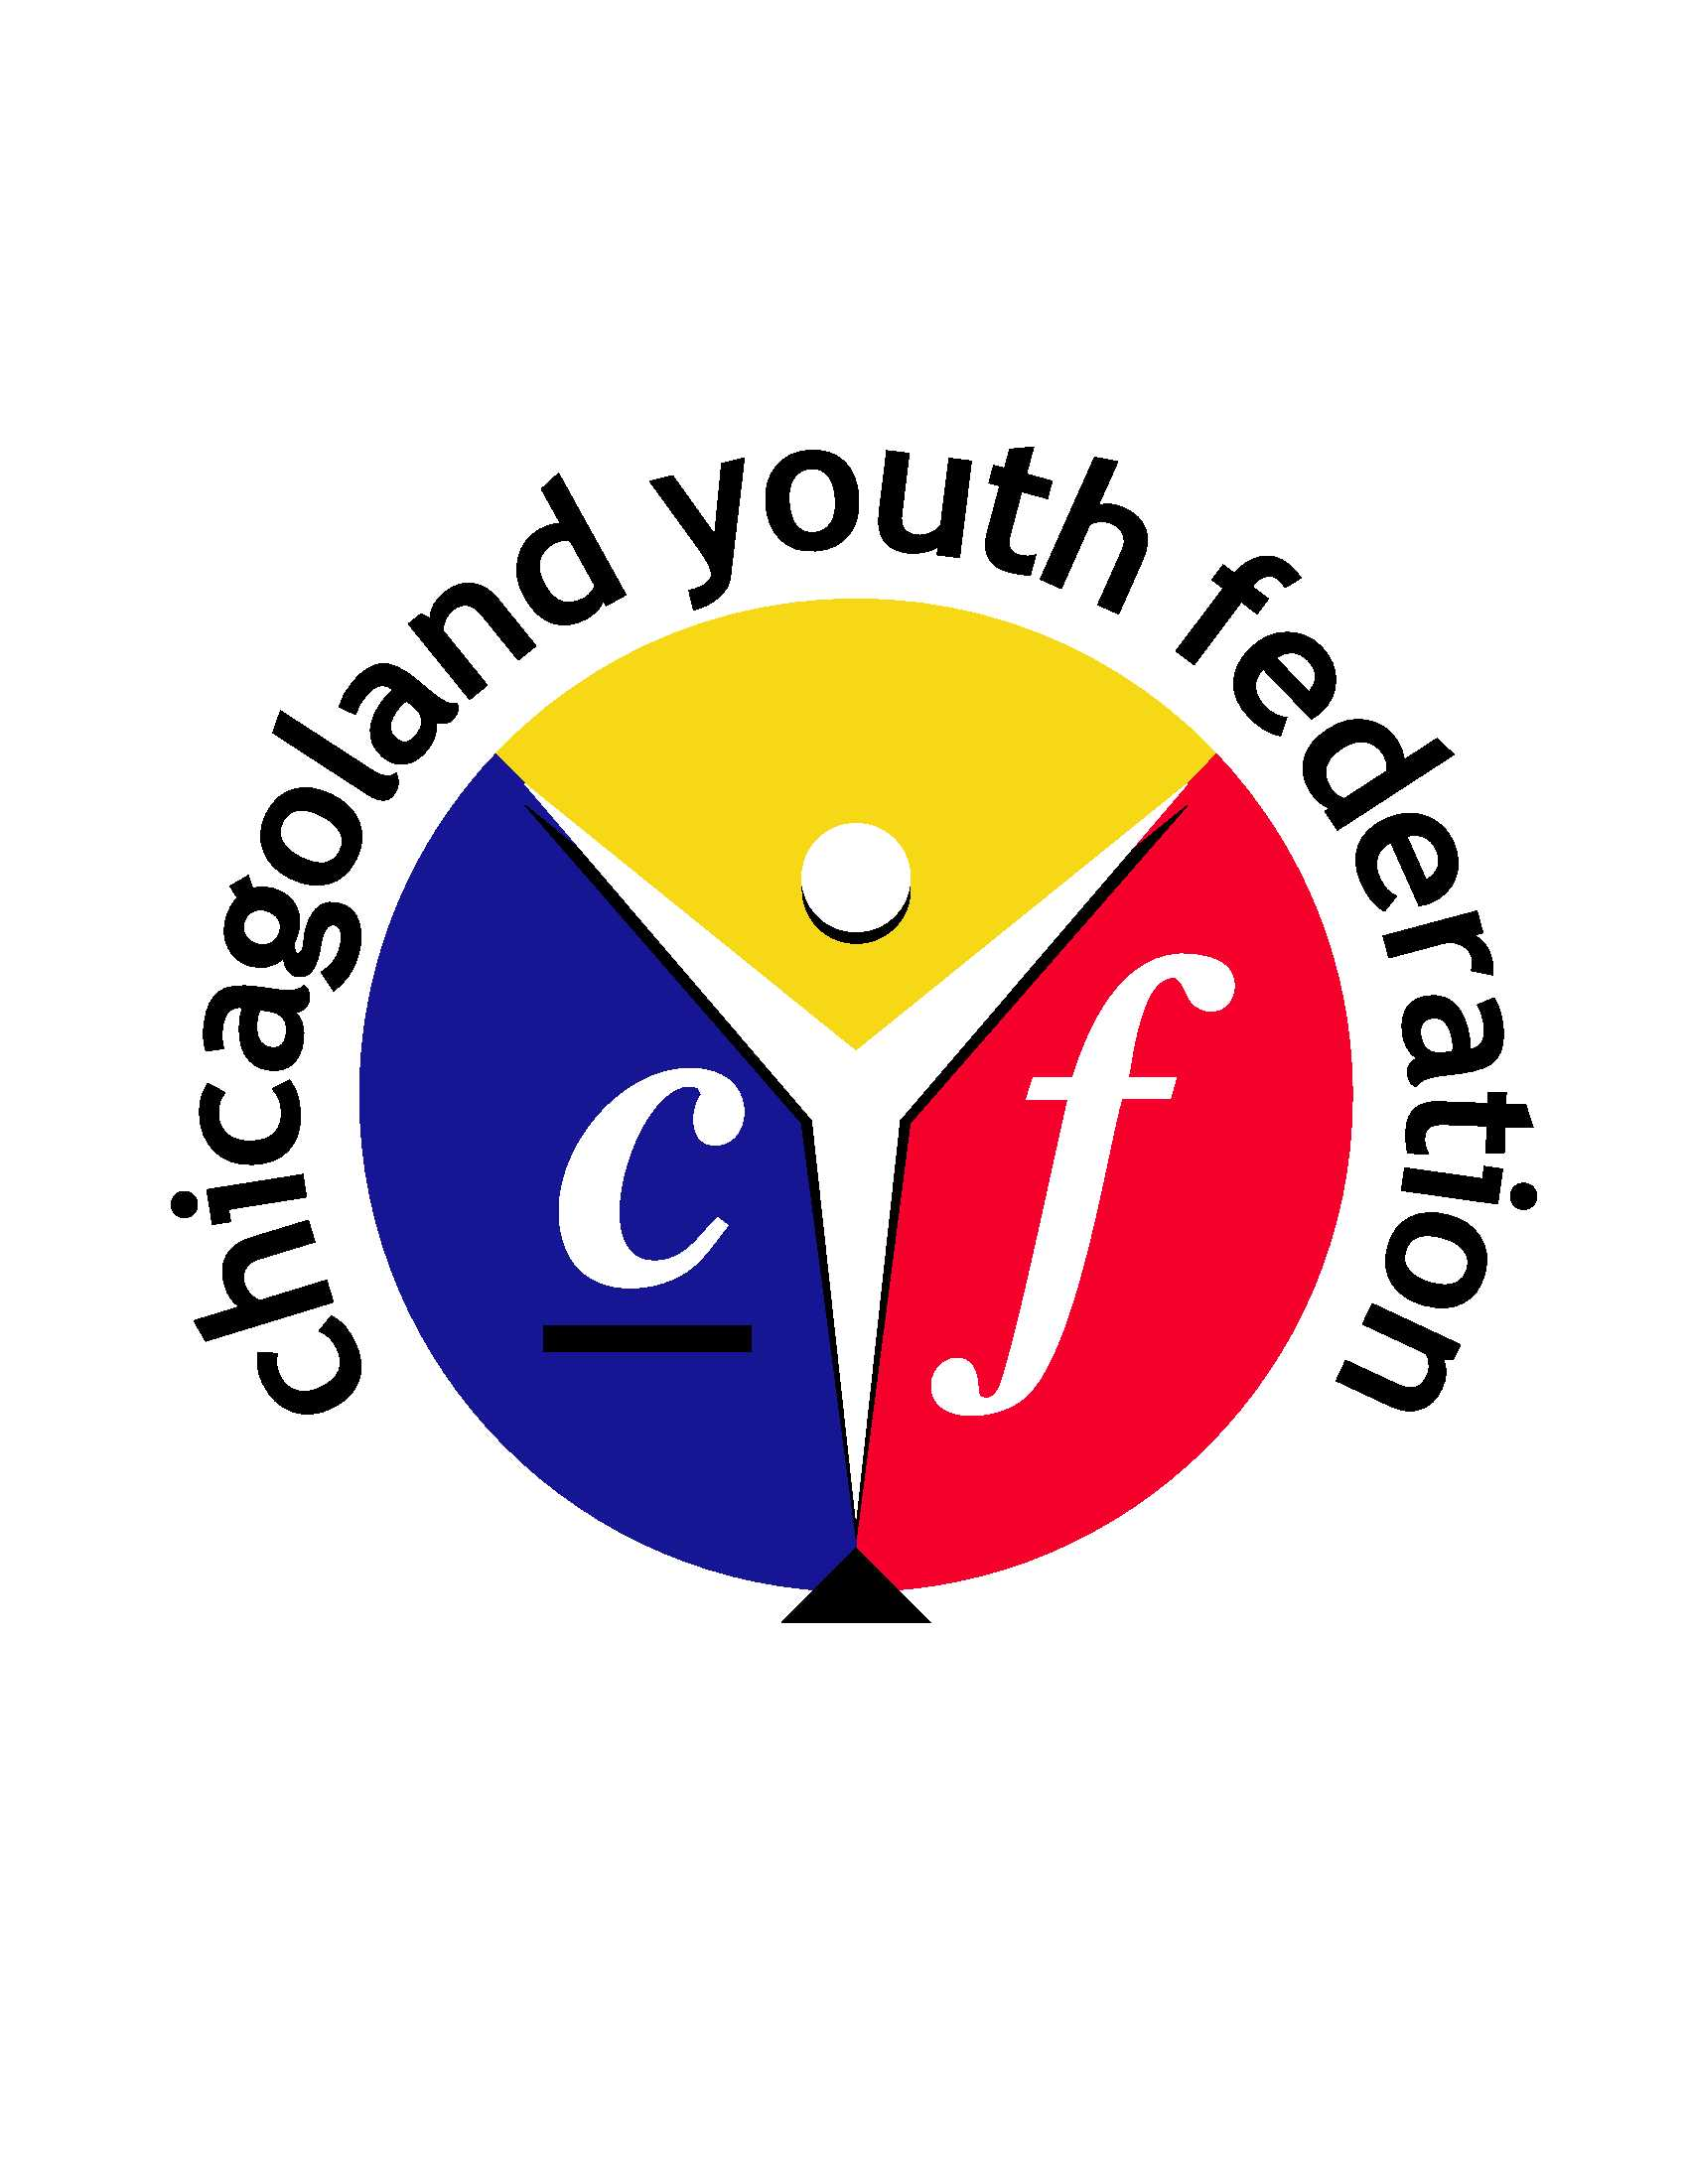 Chicagoland Youth Federation    Facebook Page    The Chicagoland Youth Federation is a subsidiary of the Lake Region Conference Youth Department. It is comprised of Seventh-day Adventist Churches in the Chicagoland area and surrounding areas.   President: Latita Thomas